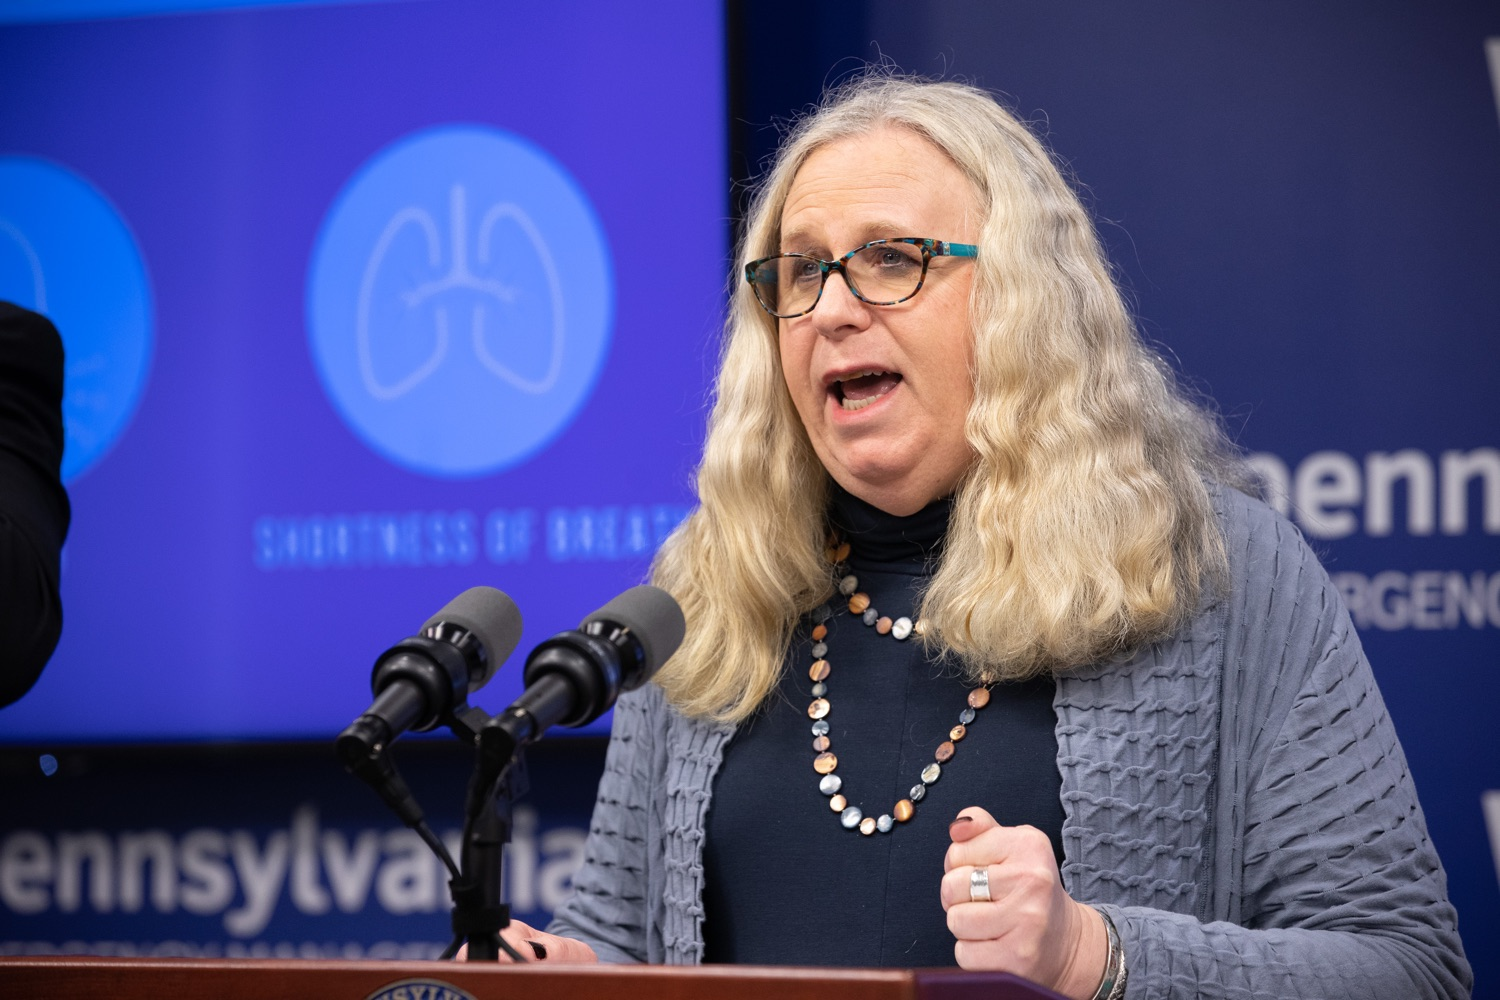 "<a href=""https://filesource.wostreaming.net/commonwealthofpa/photo/17894_doh_covid19_update_dz_0013.jpg"" target=""_blank"">⇣ Download Photo<br></a>Secretary of Health Dr. Rachel Levine speaking at the virtual press conference.  The Pennsylvania Department of Health today confirmed as of 12:00 a.m., March 19, that there are 52 additional positive cases of COVID-19 reported, bringing the statewide total to 185. The state also reported one death, an adult from Northampton County. All people are either in isolation at home or being treated at the hospital. Harrisburg, PA- March 19, 2020"